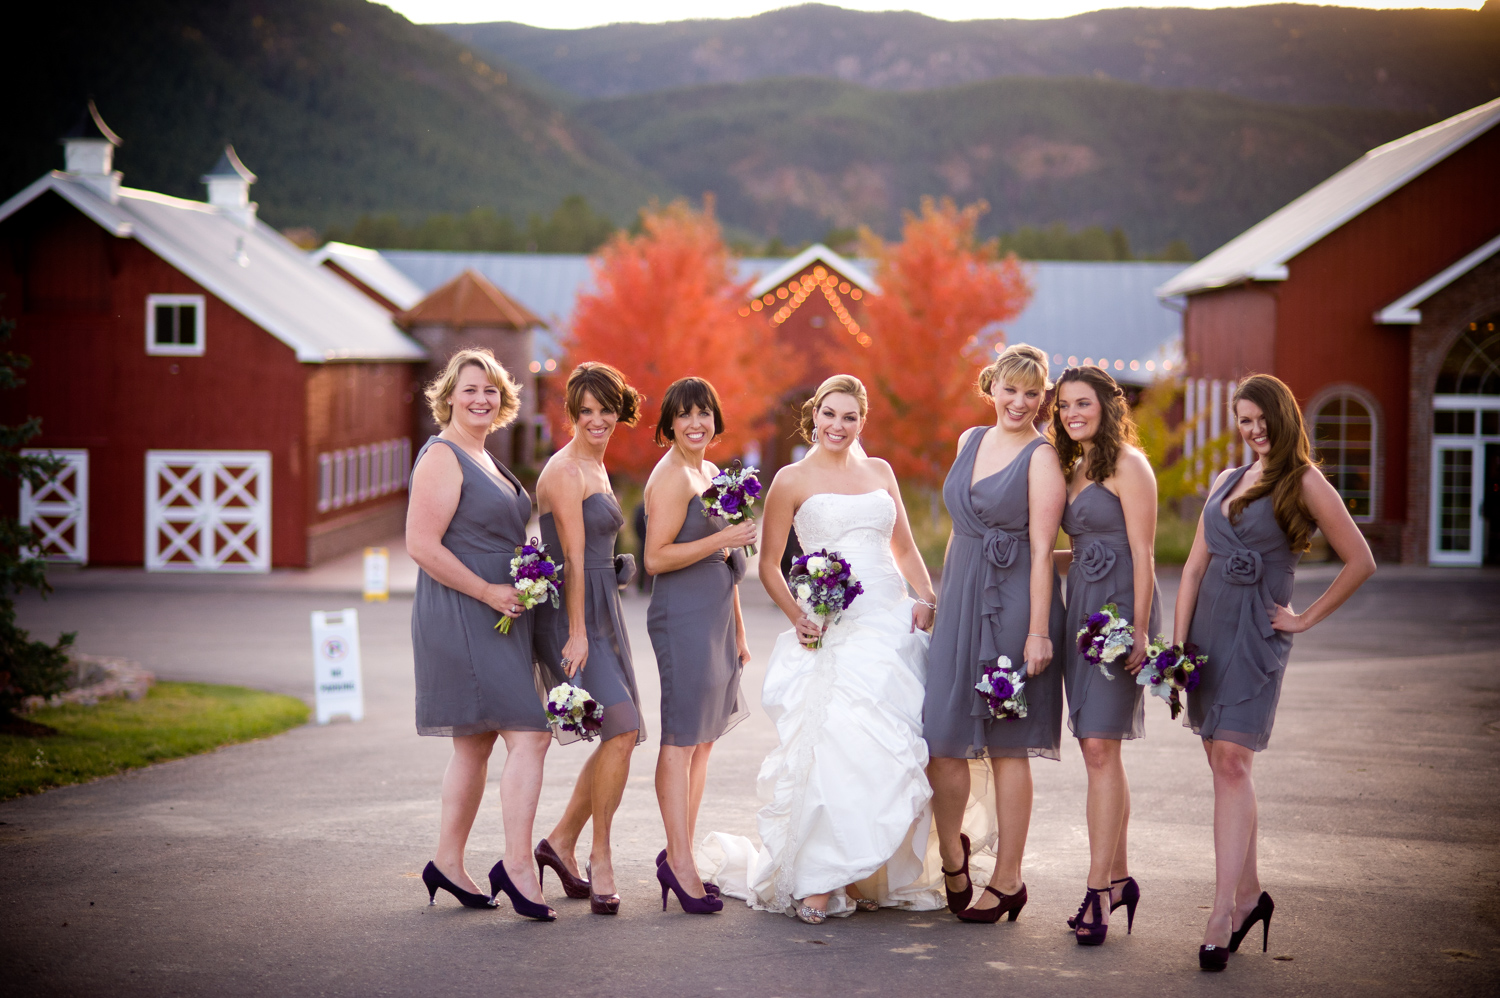 Crooked_Willow_Farms__Sedalia_Wedding_035.JPG